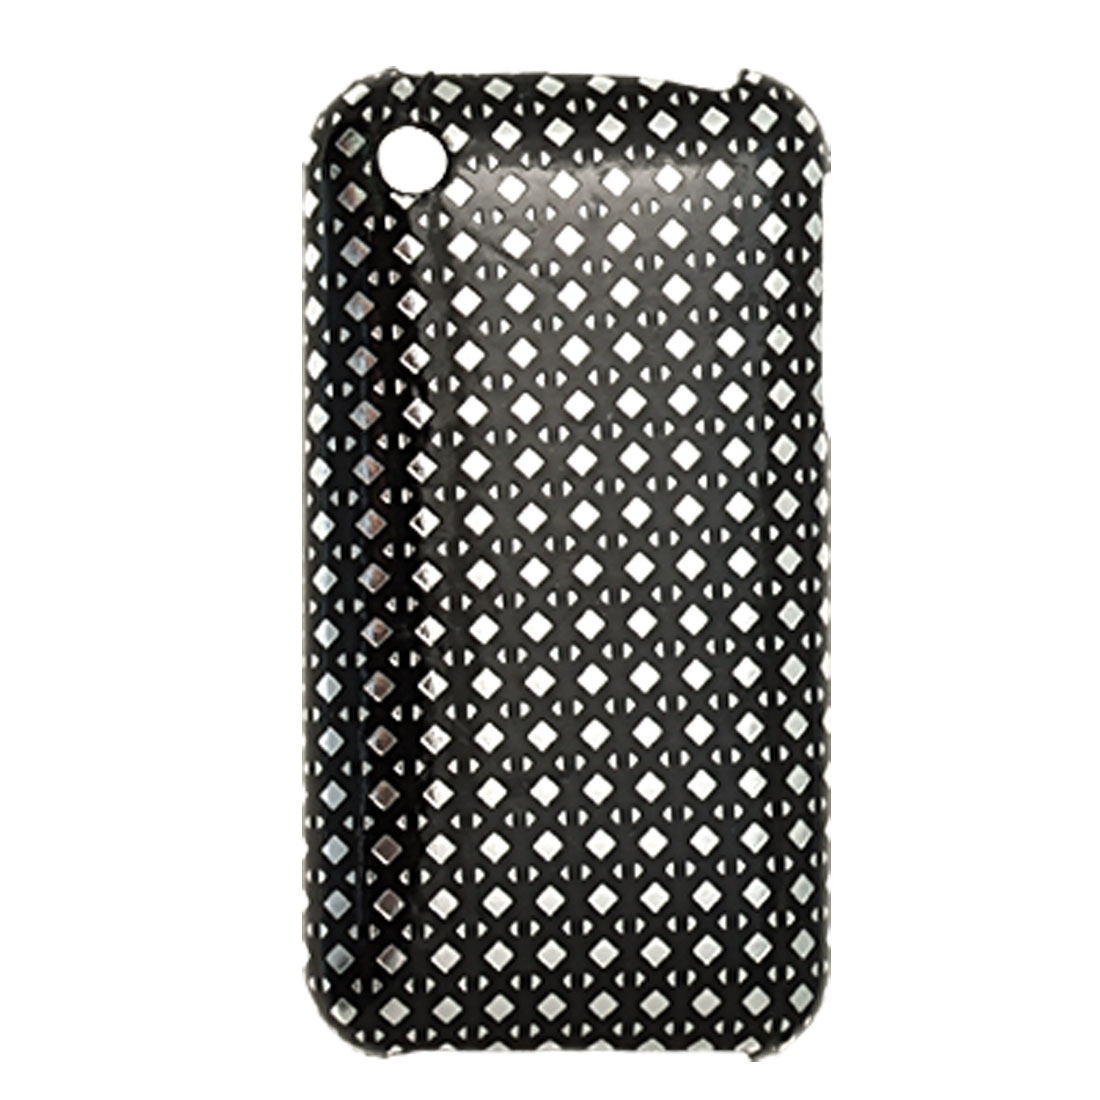 Silvery Black Leather Coated Plastic Back Case Cover for iPhone 3G